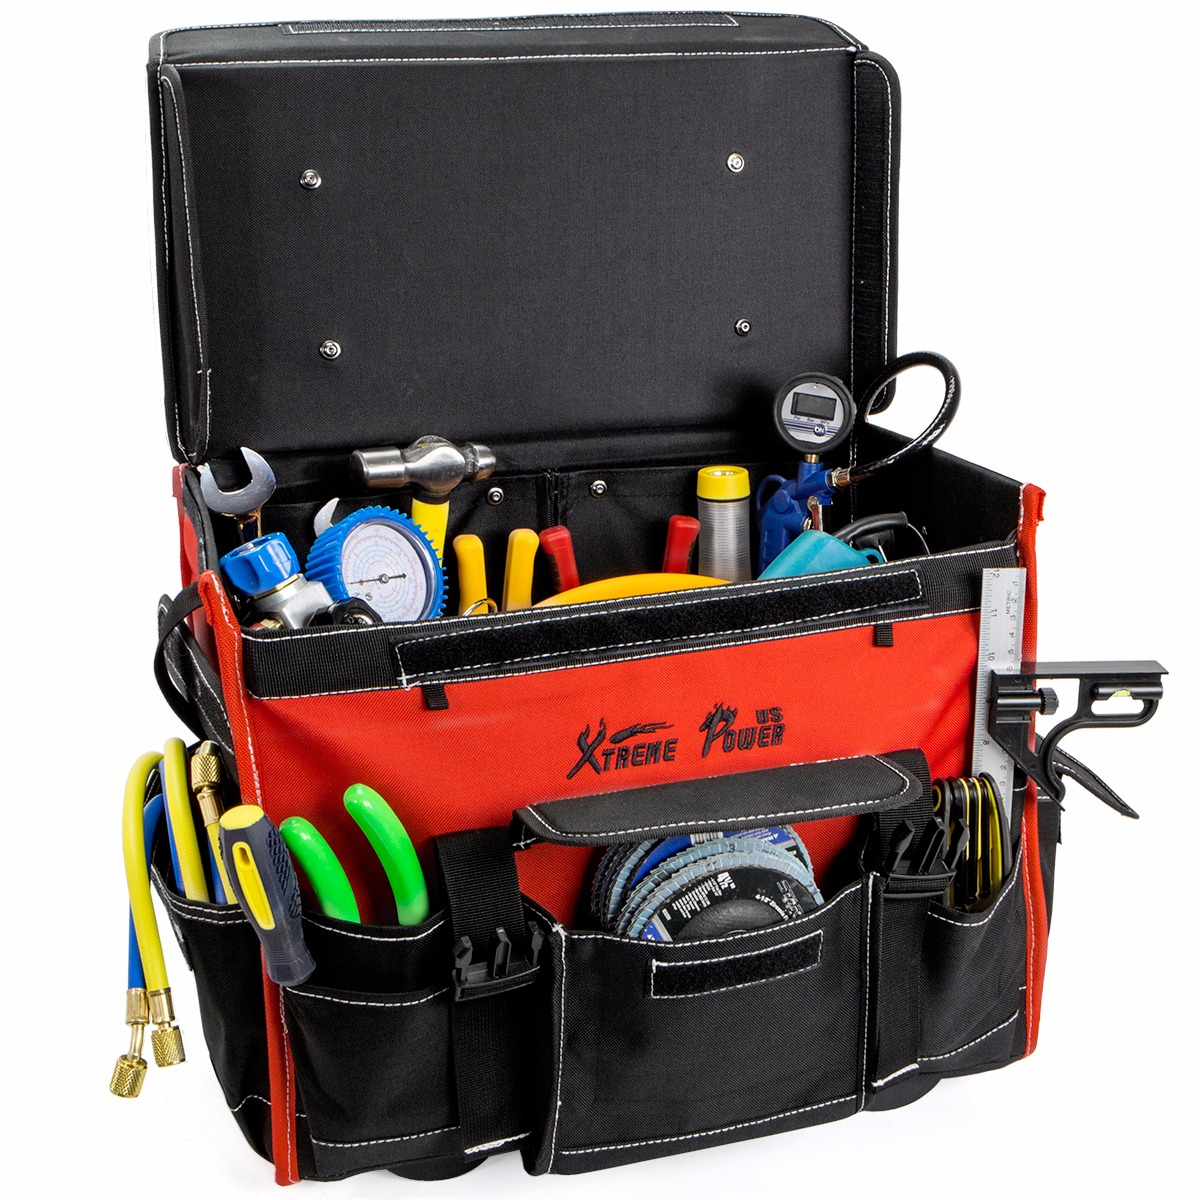 18 Portable Rolling Tool Bag Storage Organizer Hd With Wheels